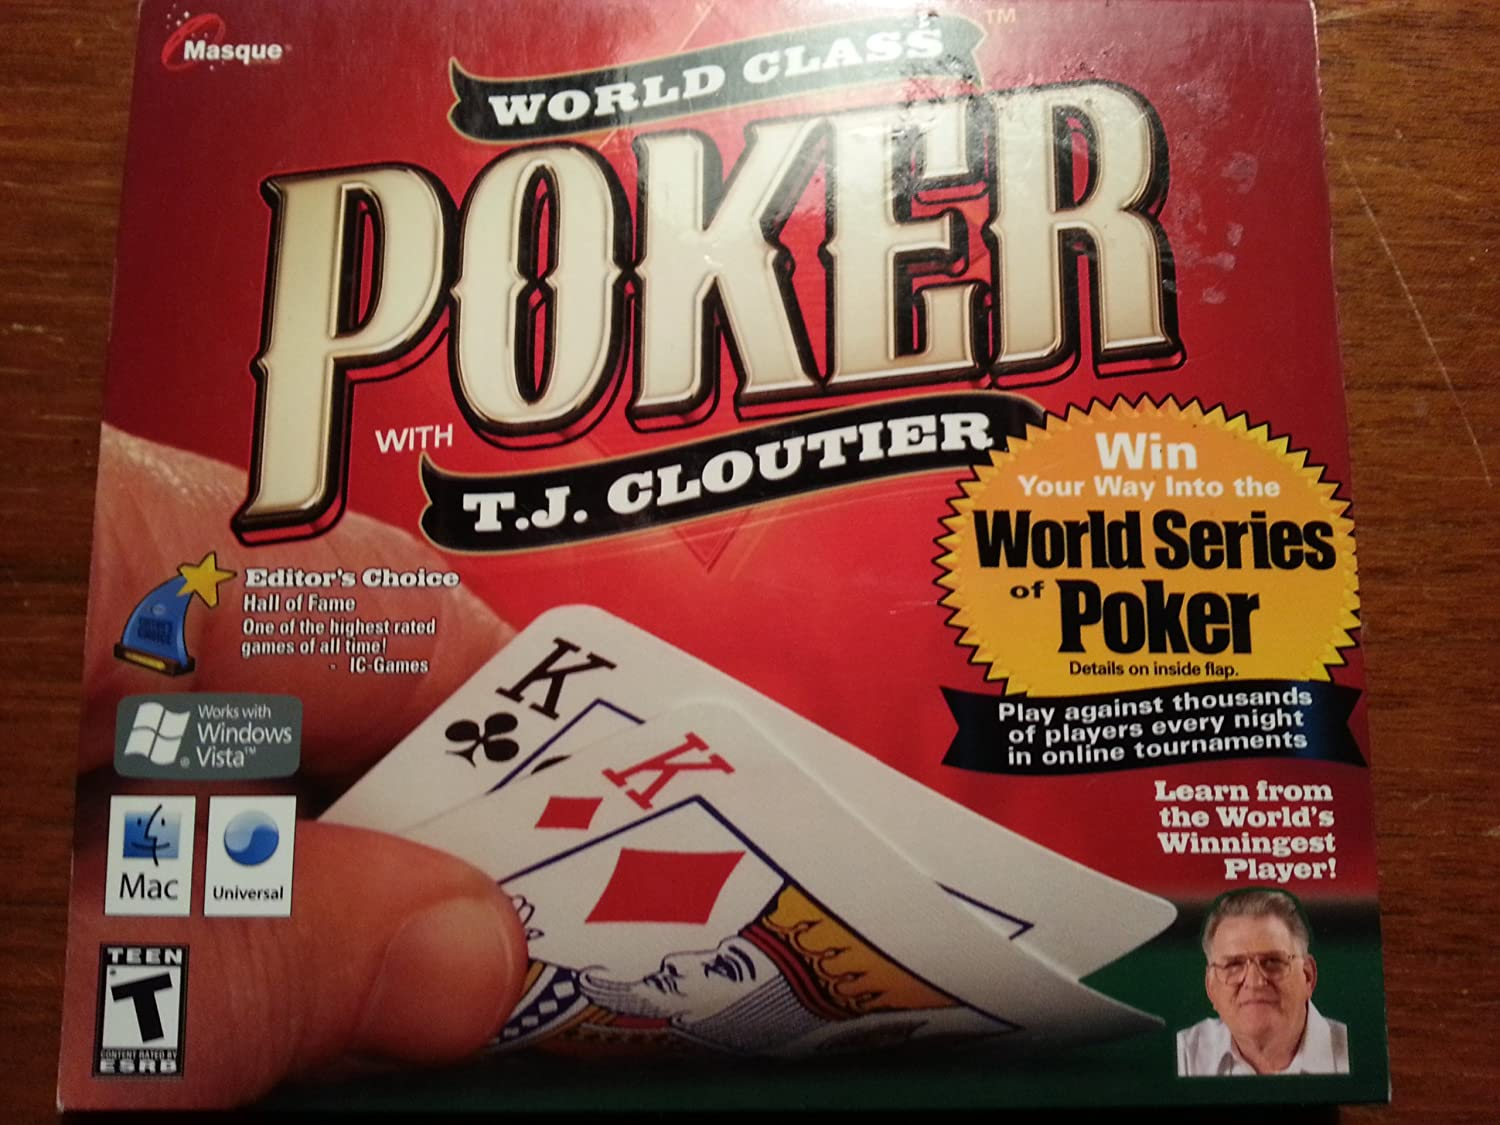 World class poker with tj cloutier review 60 inch round poker table cover